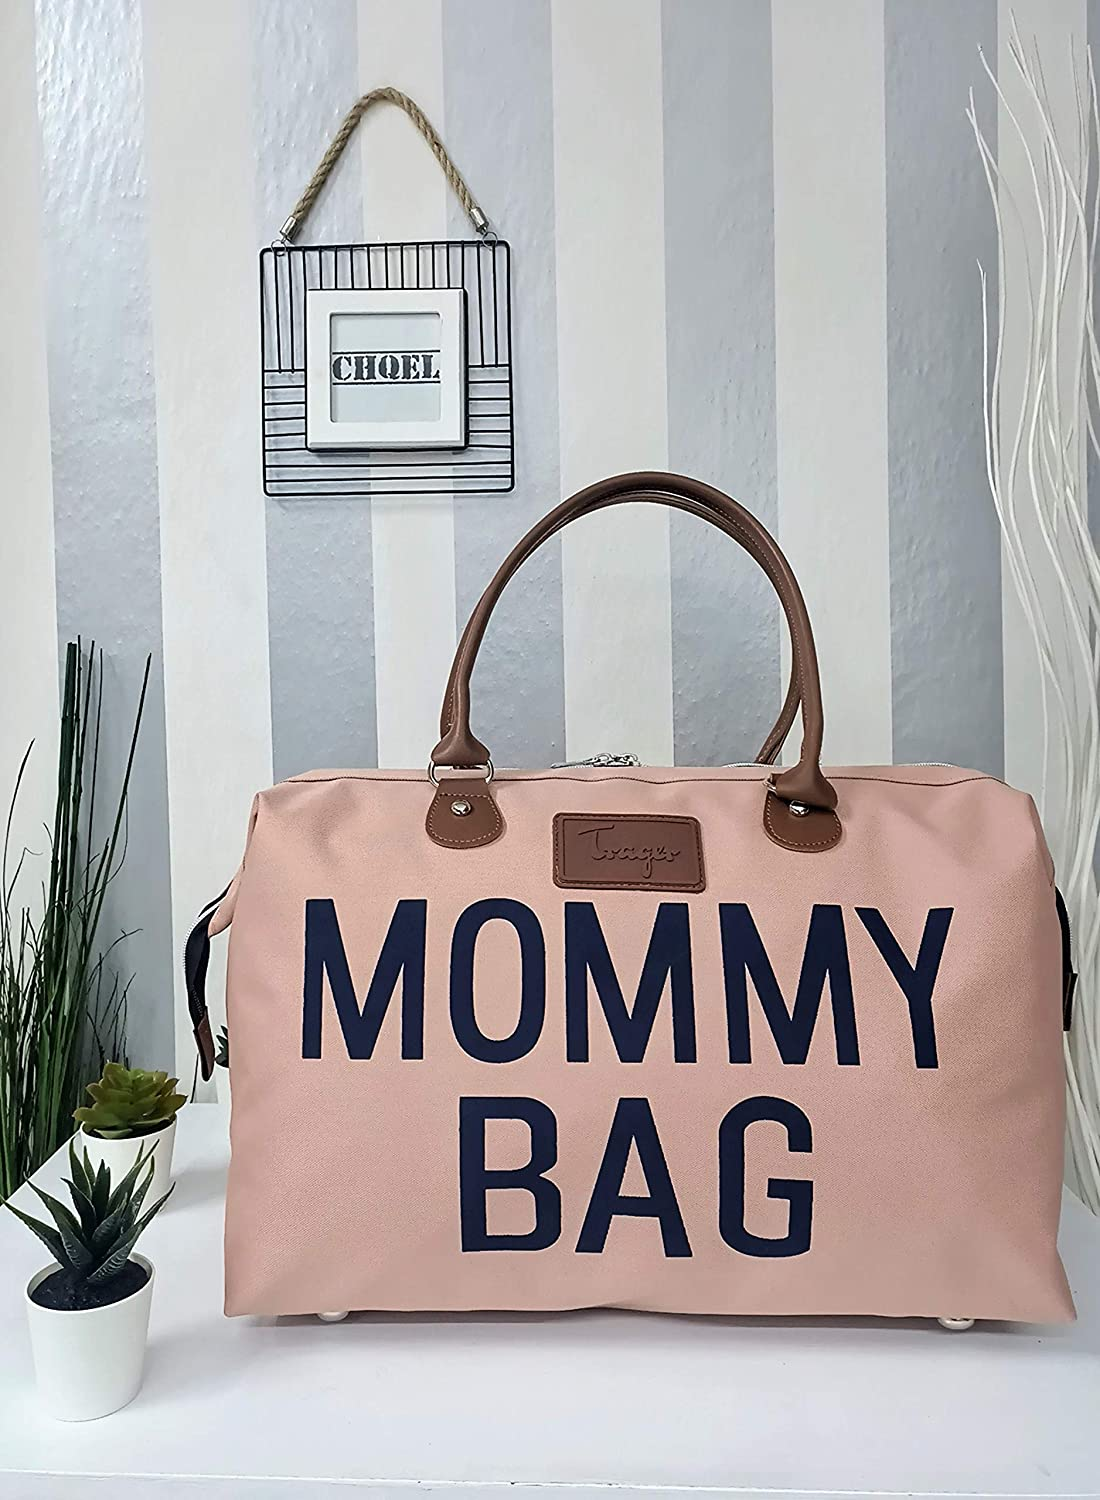 Mommy Bags for Hospital & Functional Large Baby Diaper Travel Bag for Baby  Care Black CHQEL Baby Diaper Bag Diaper Bags Baby looknewsindia.com